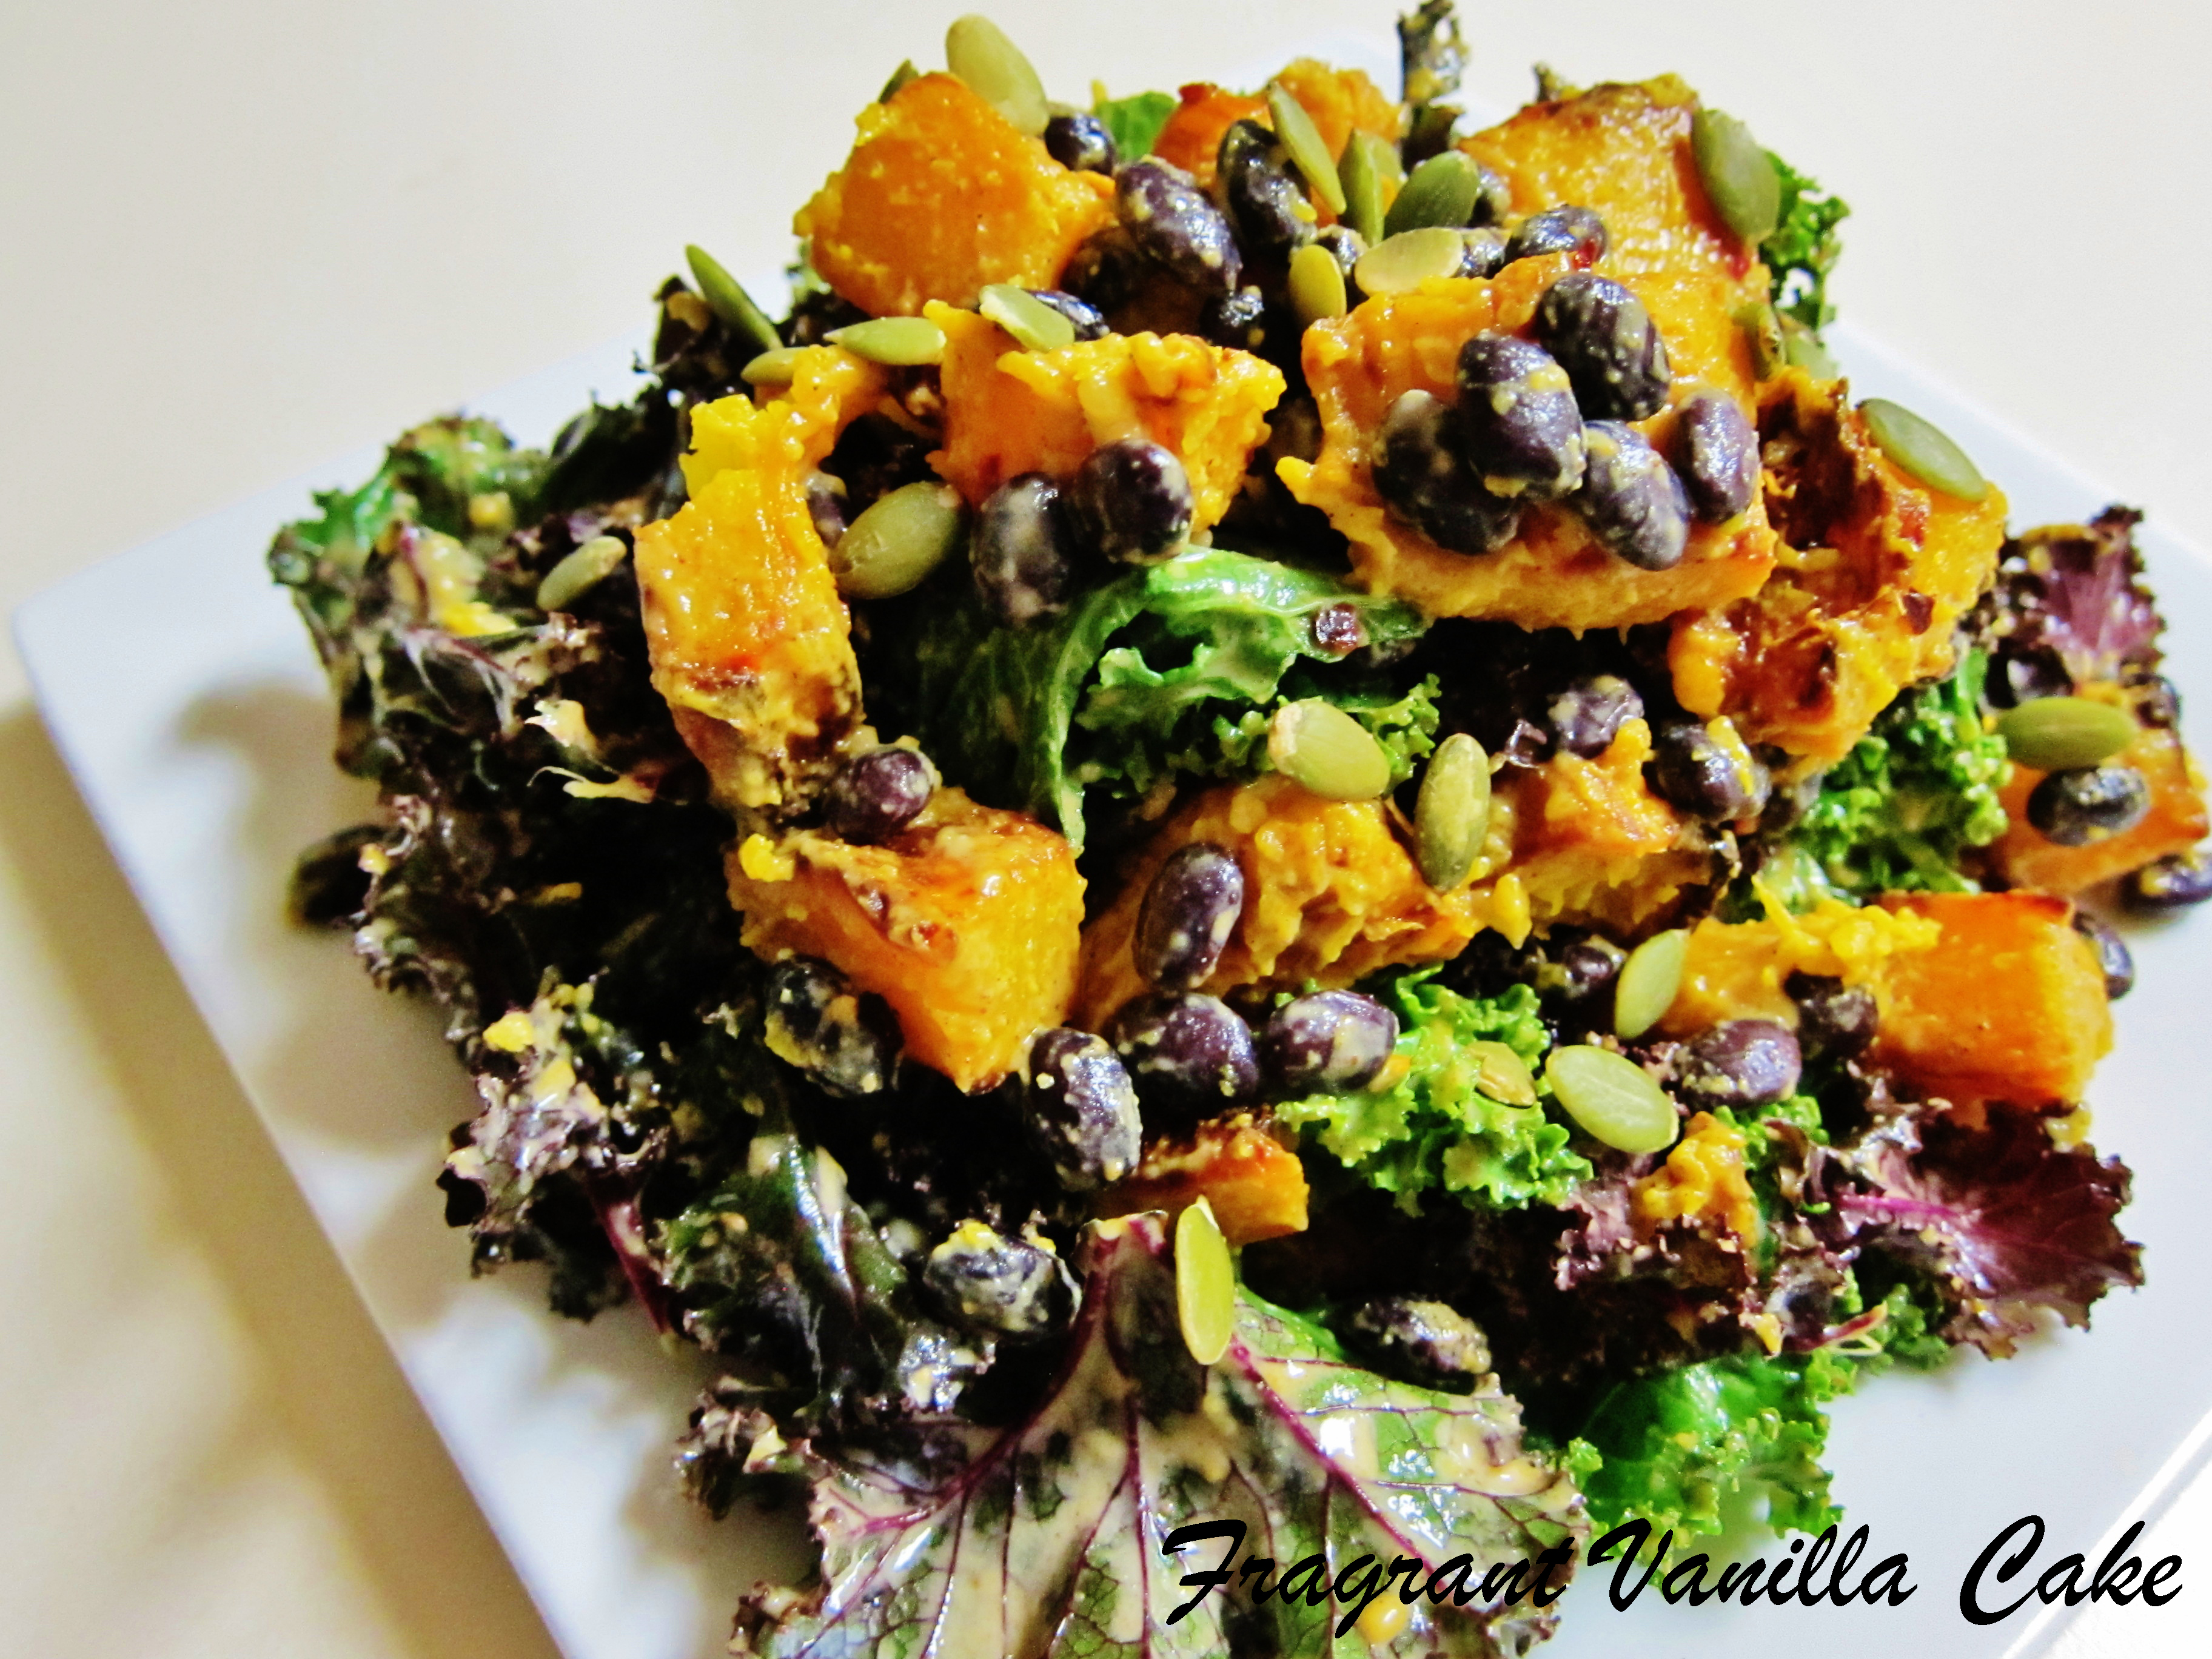 Roasted Pumpkin and Black Bean Salad with Groundnut Dressing